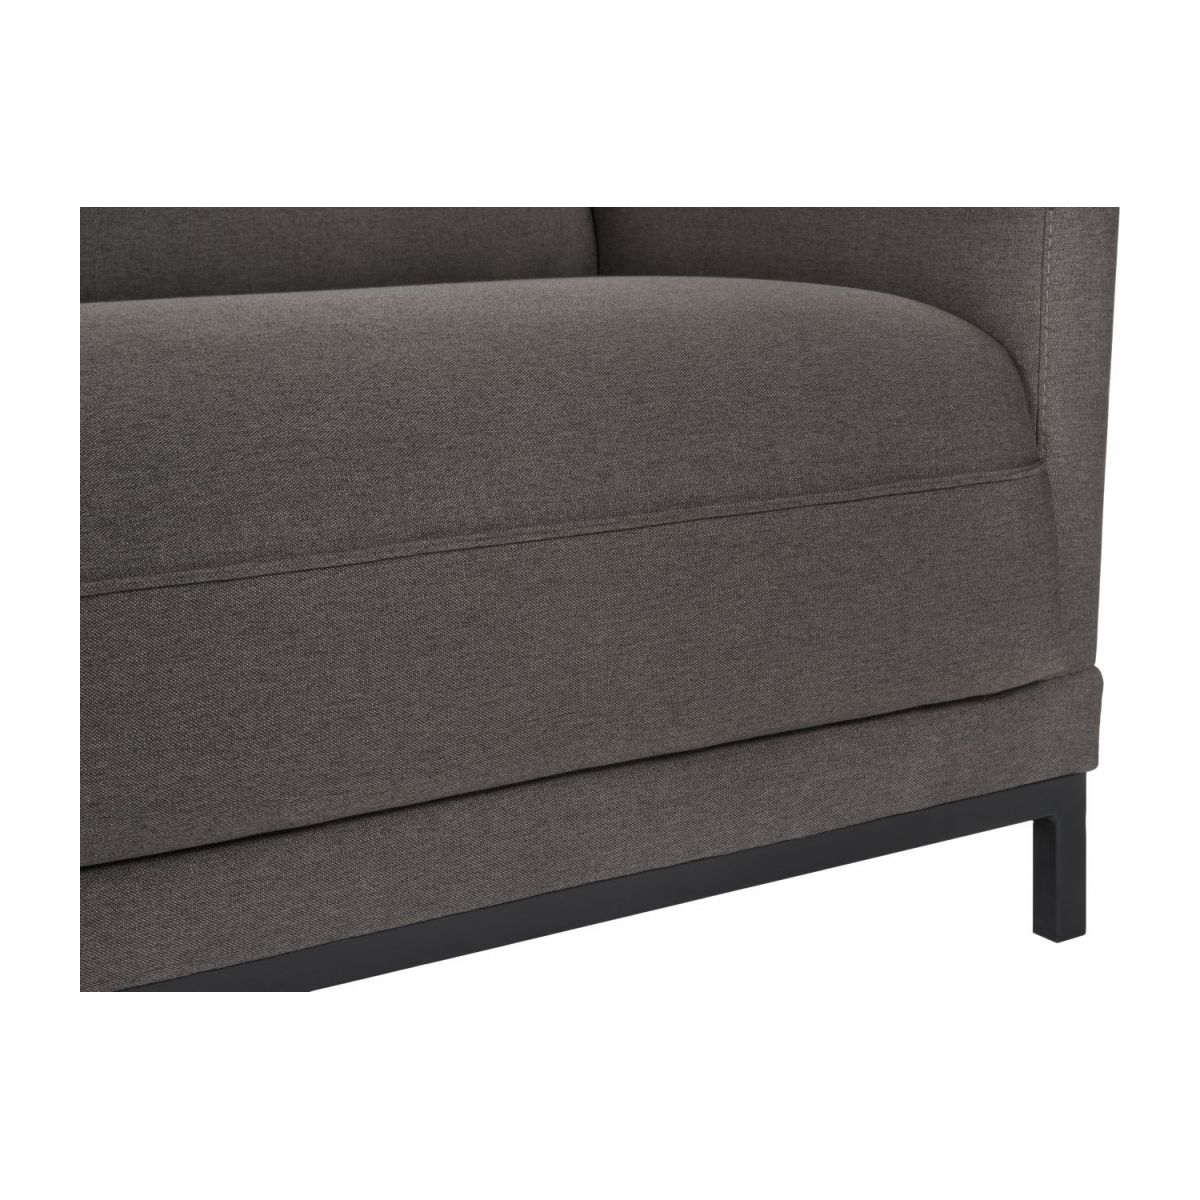 Fabric 3-seater sofa bed, grey n°7